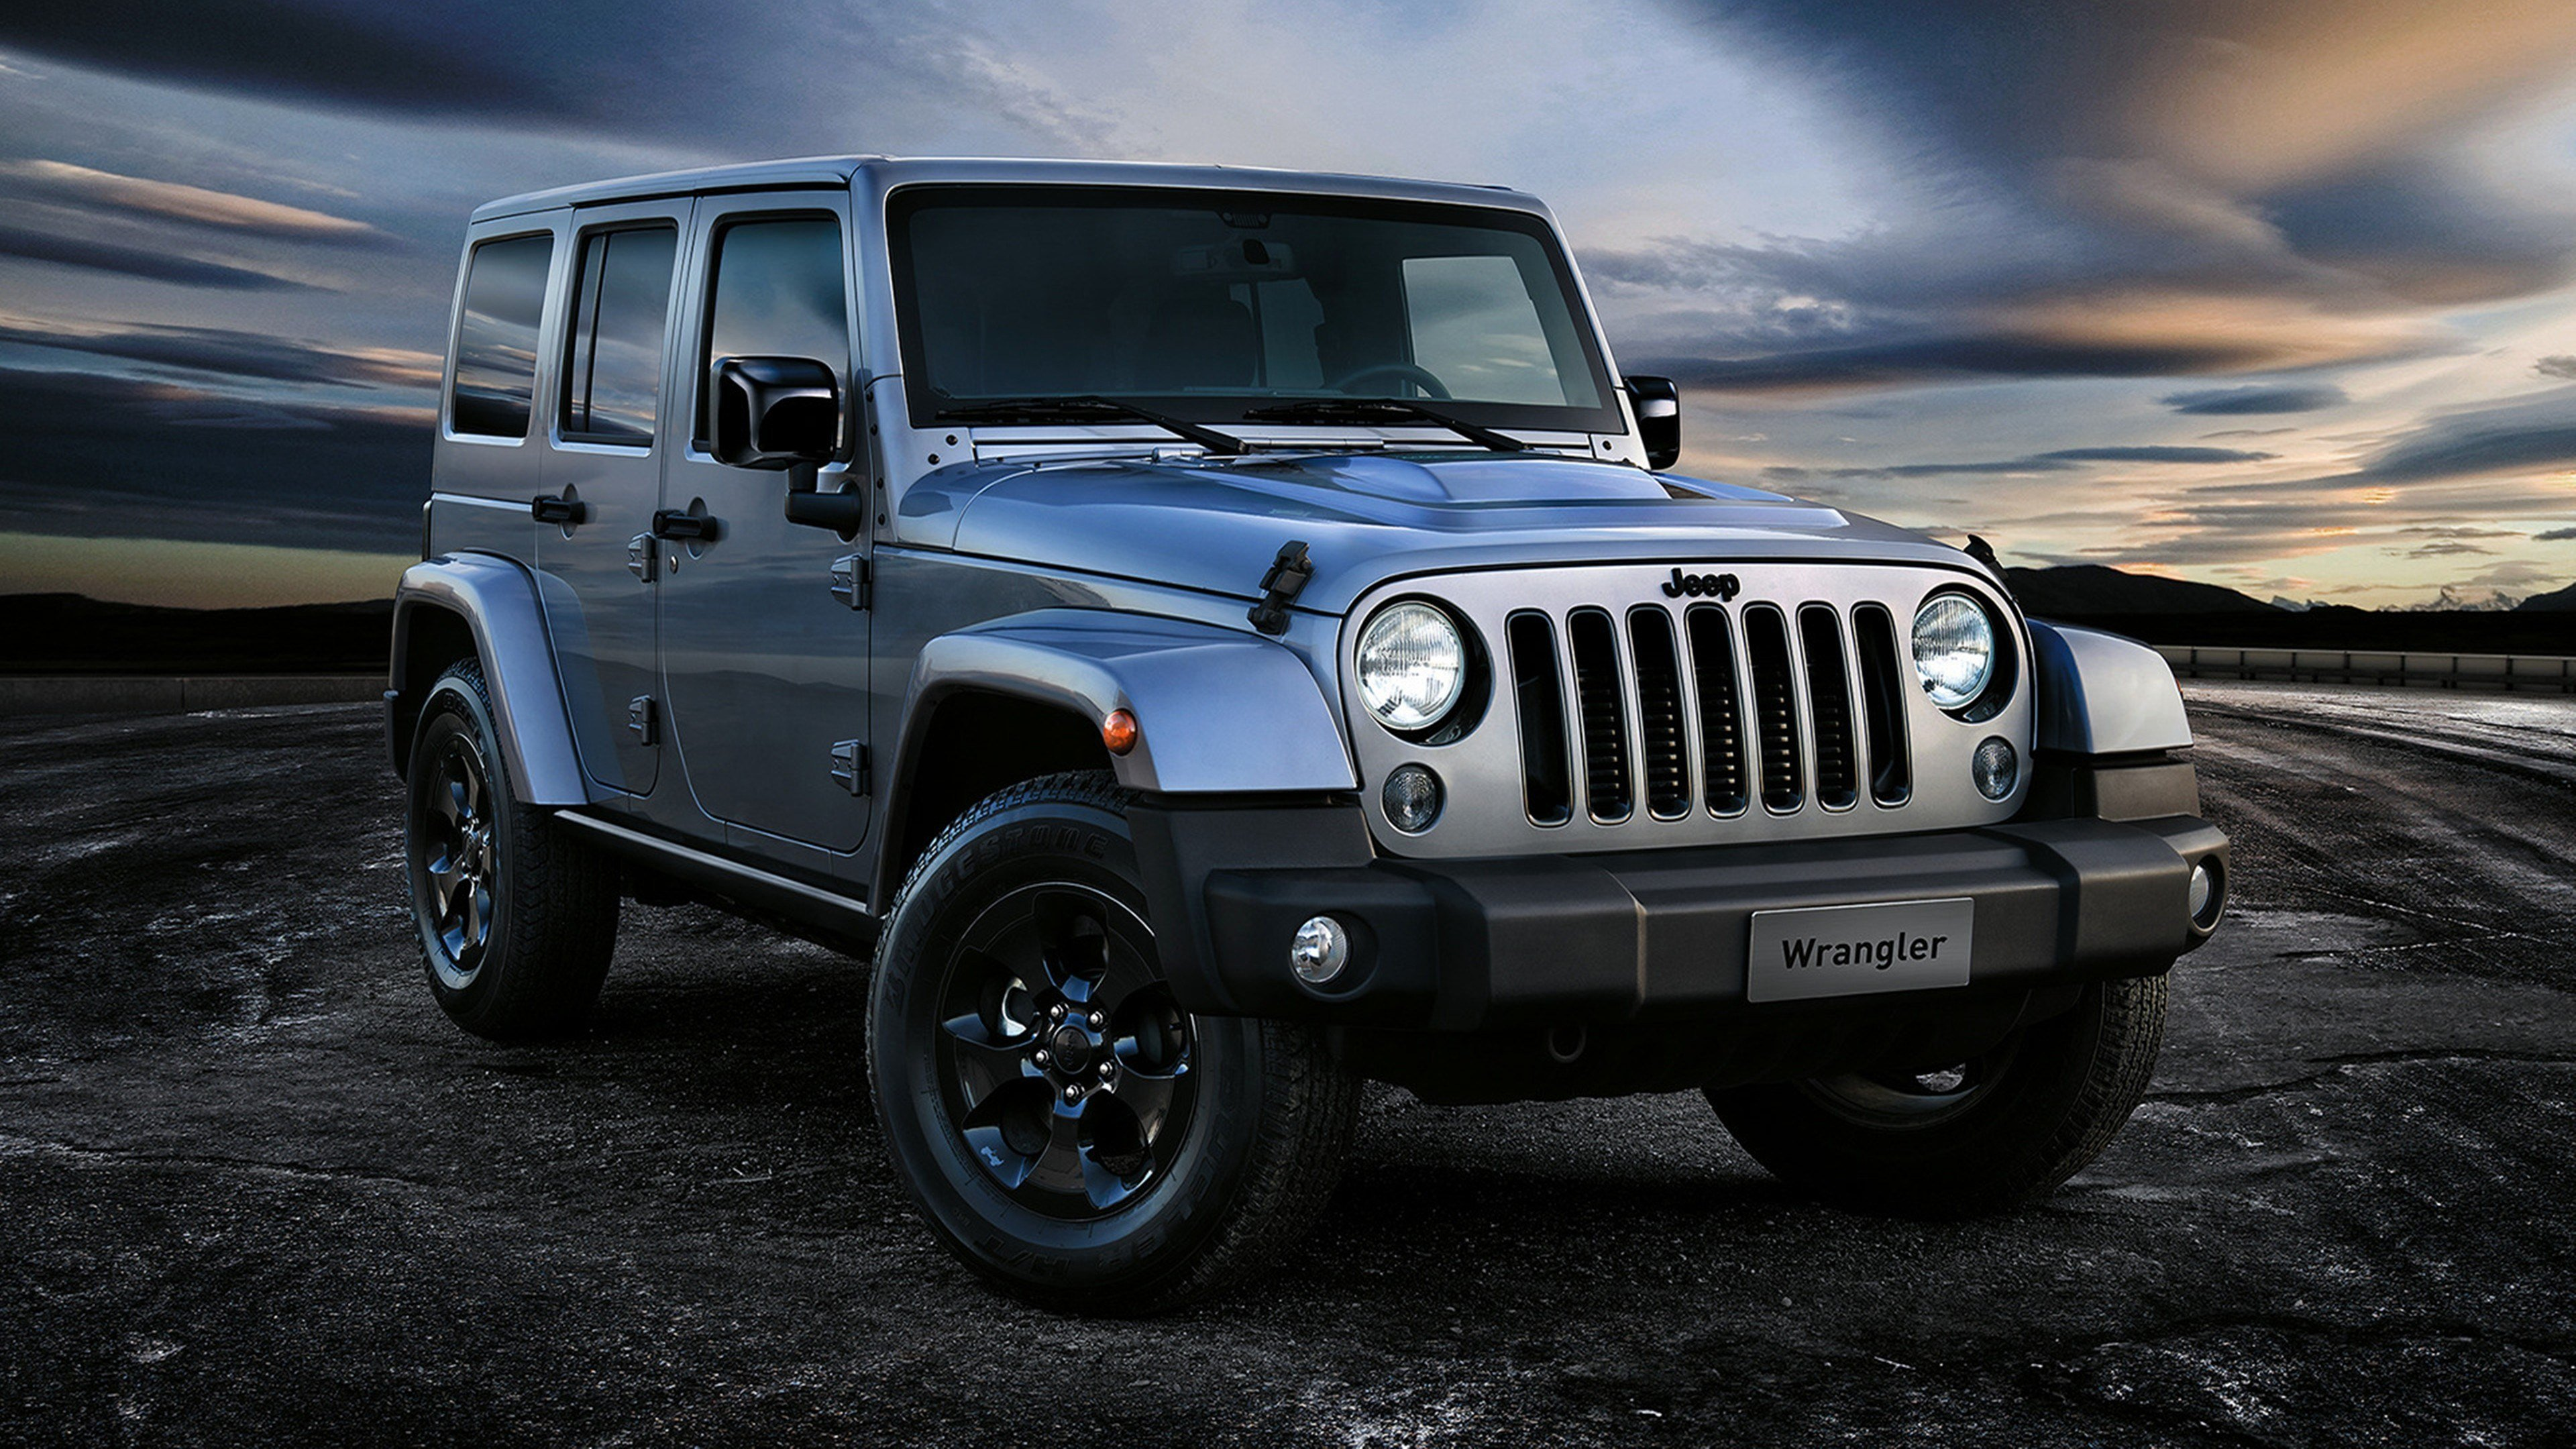 New Jeep Wrangler Wallpaper Hd 63 Images On This Month